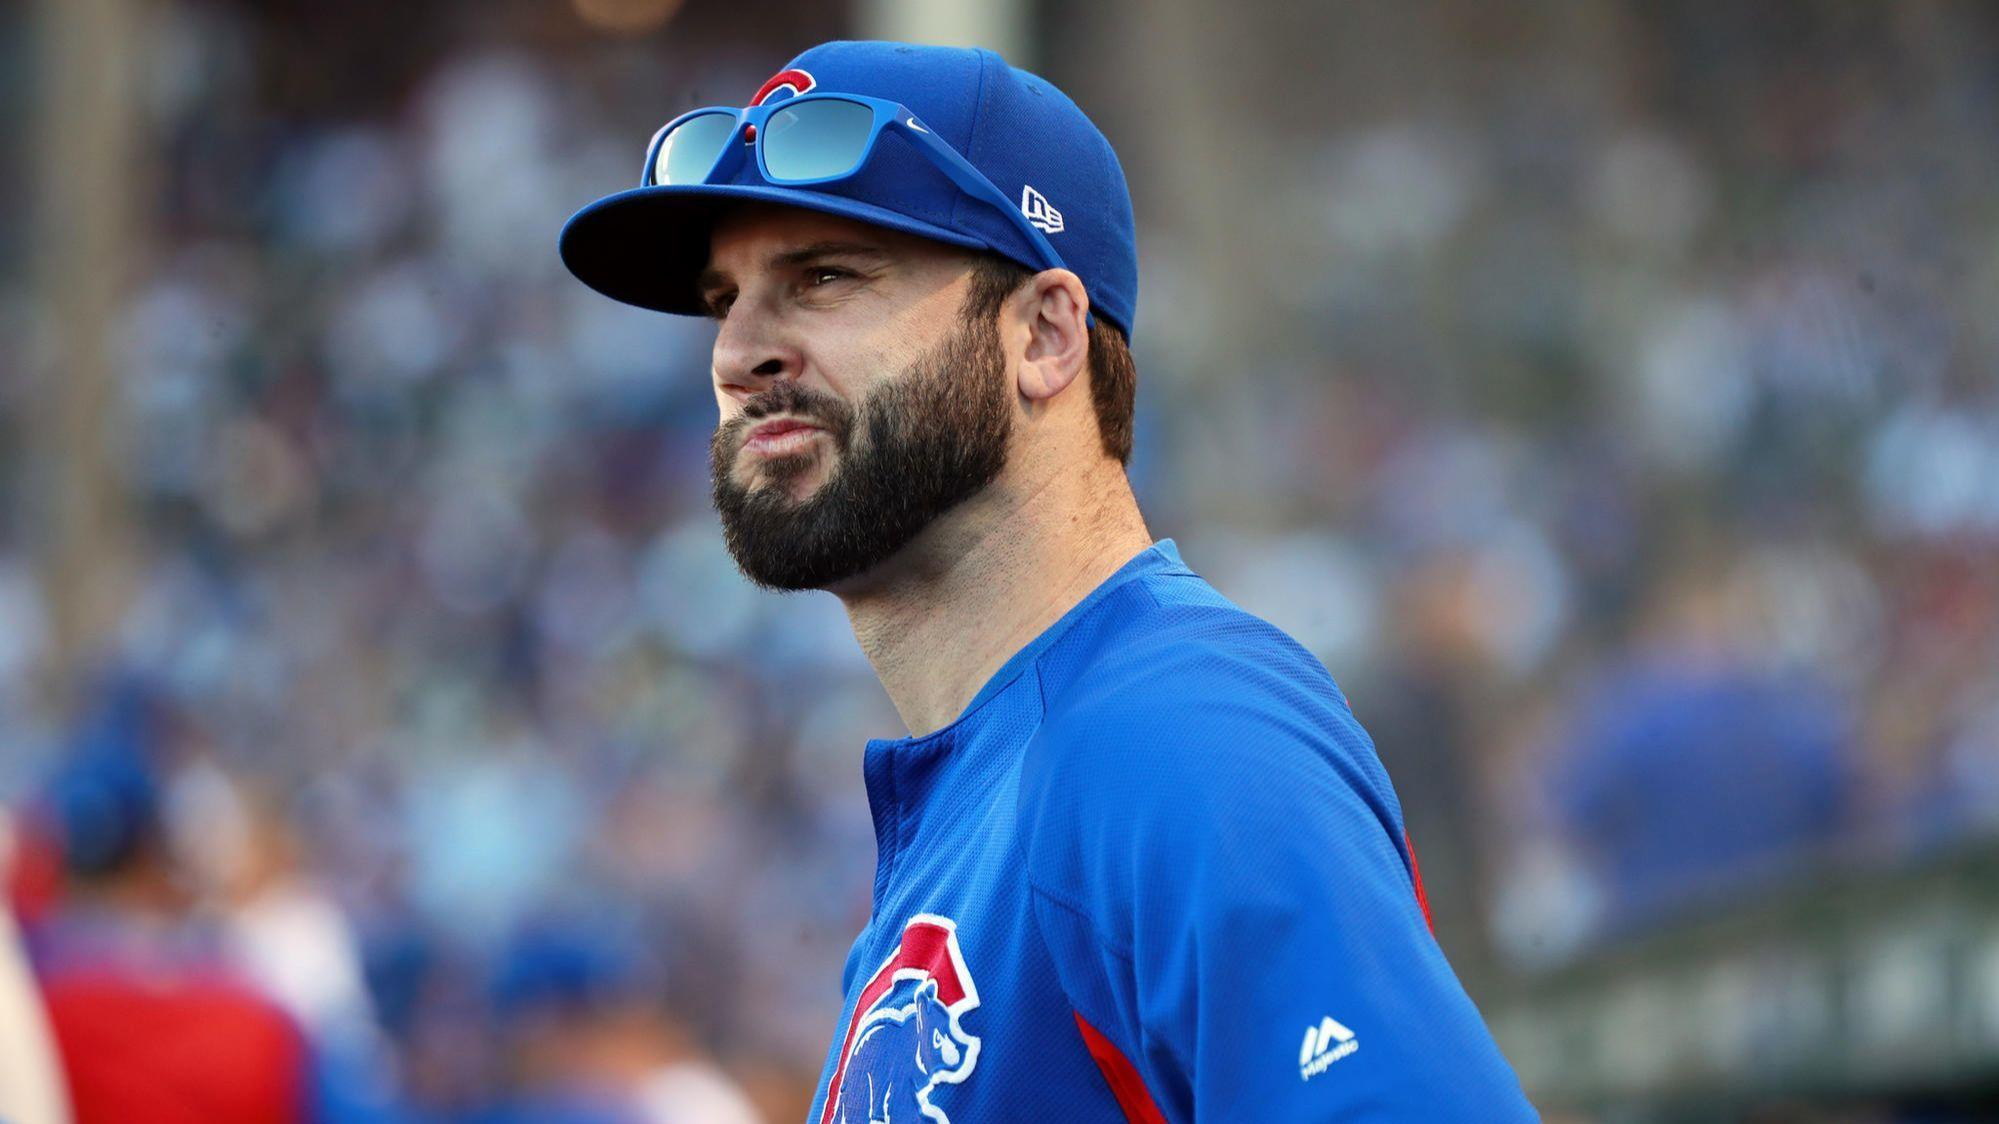 Cubs shut down Brandon Morrow after he experiences elbow soreness during rehab